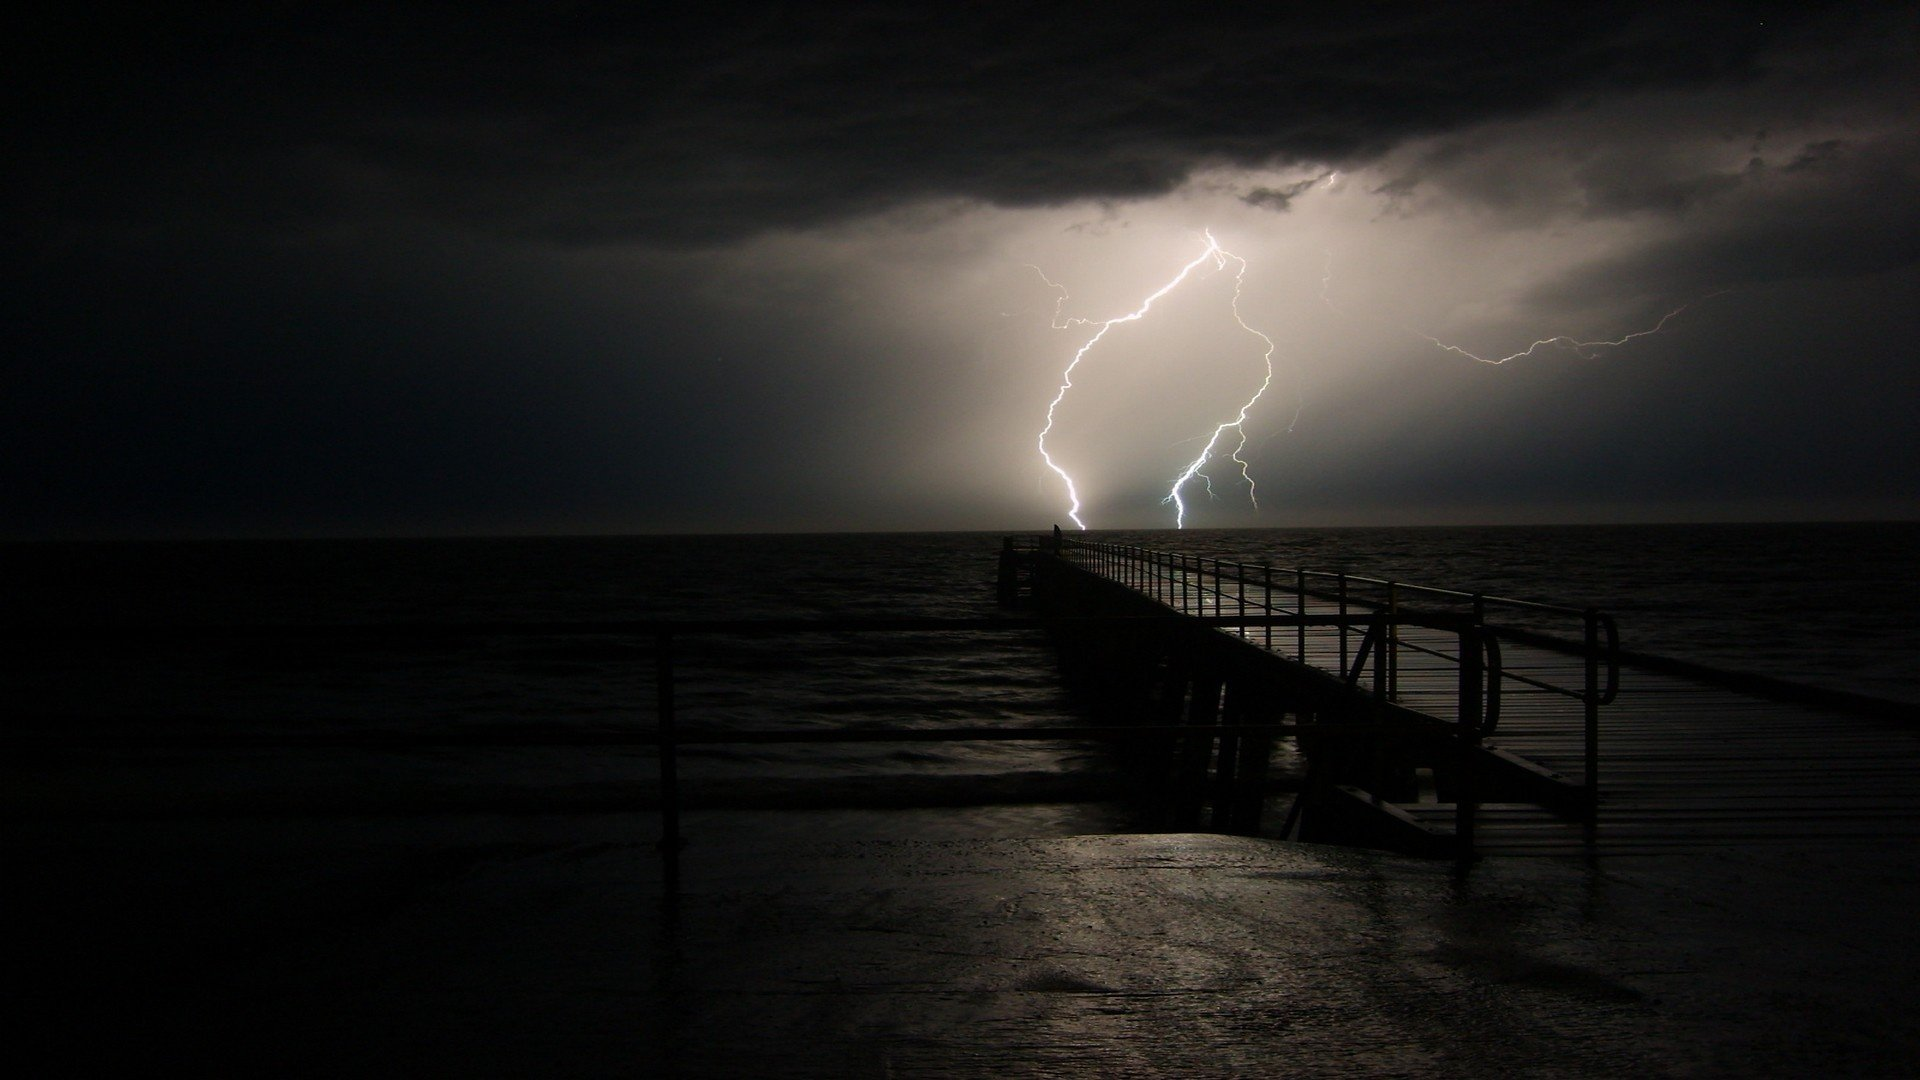 Wallpaper night sea pier lightning Thunderstorm desktop wallpaper 1920x1080